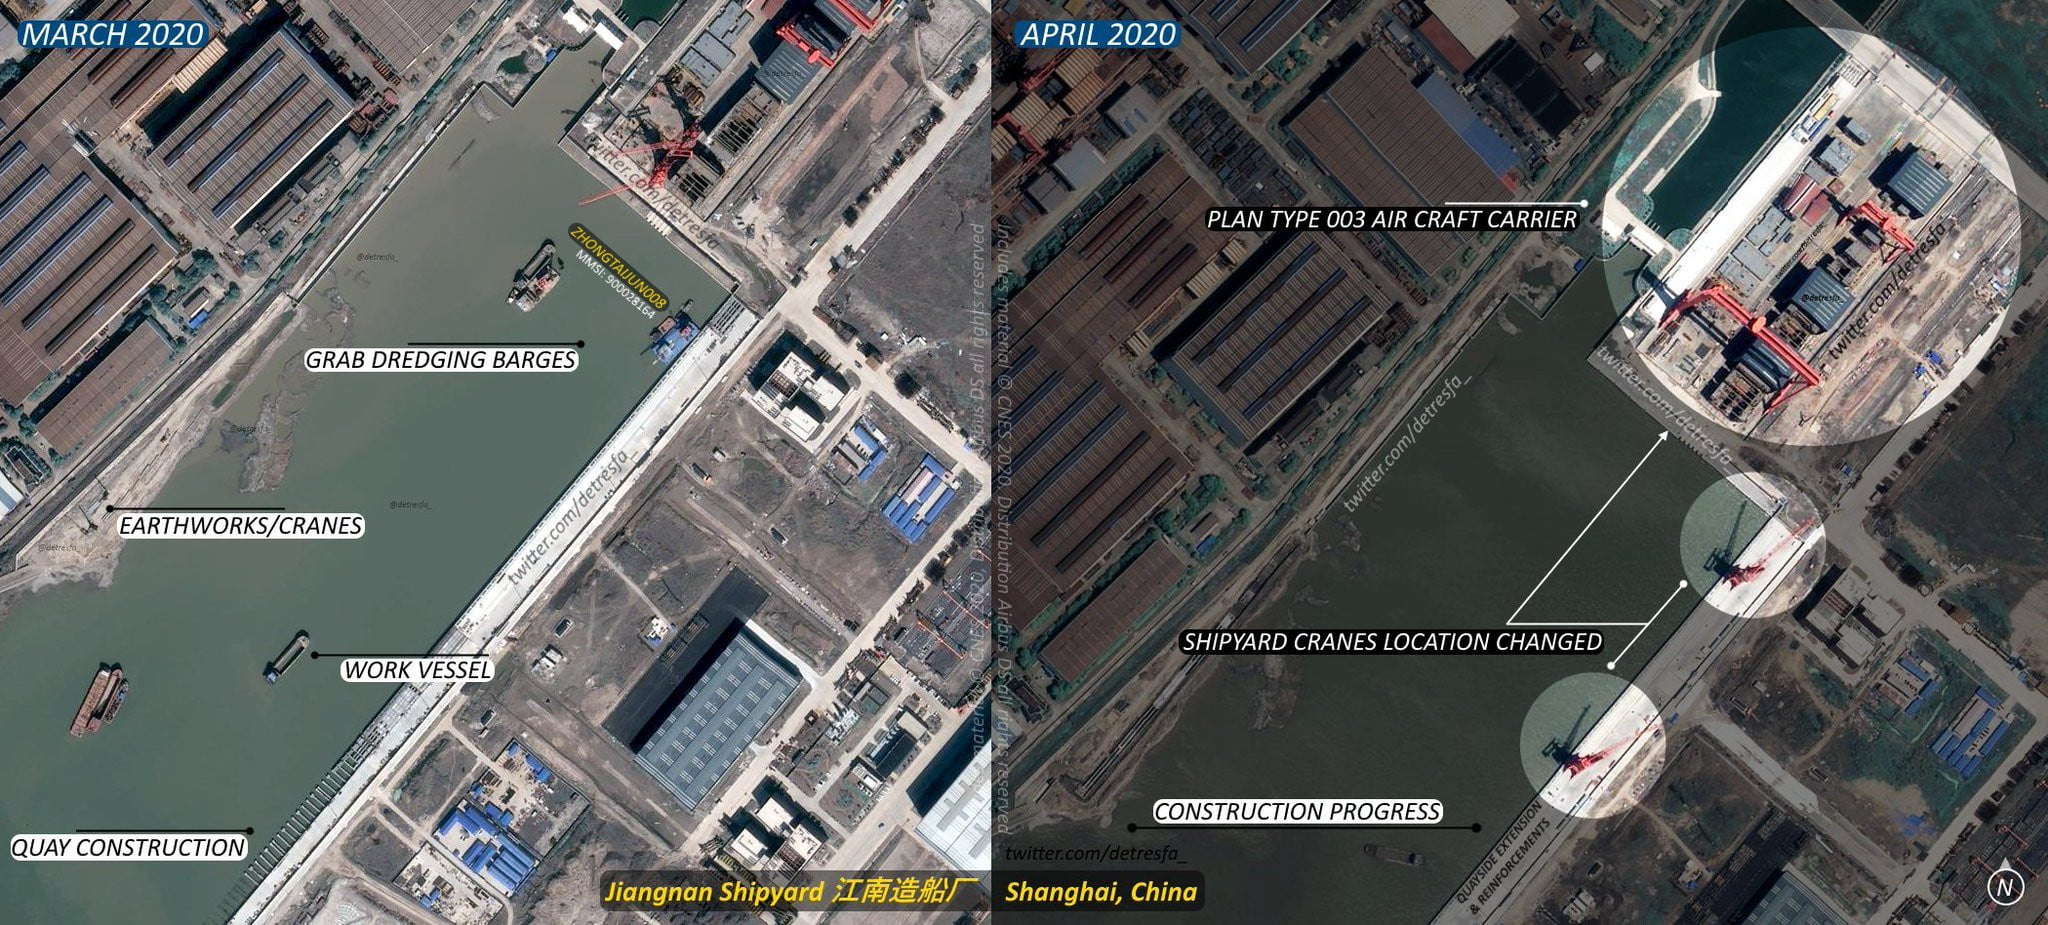 chinese 003 aircraft carrier